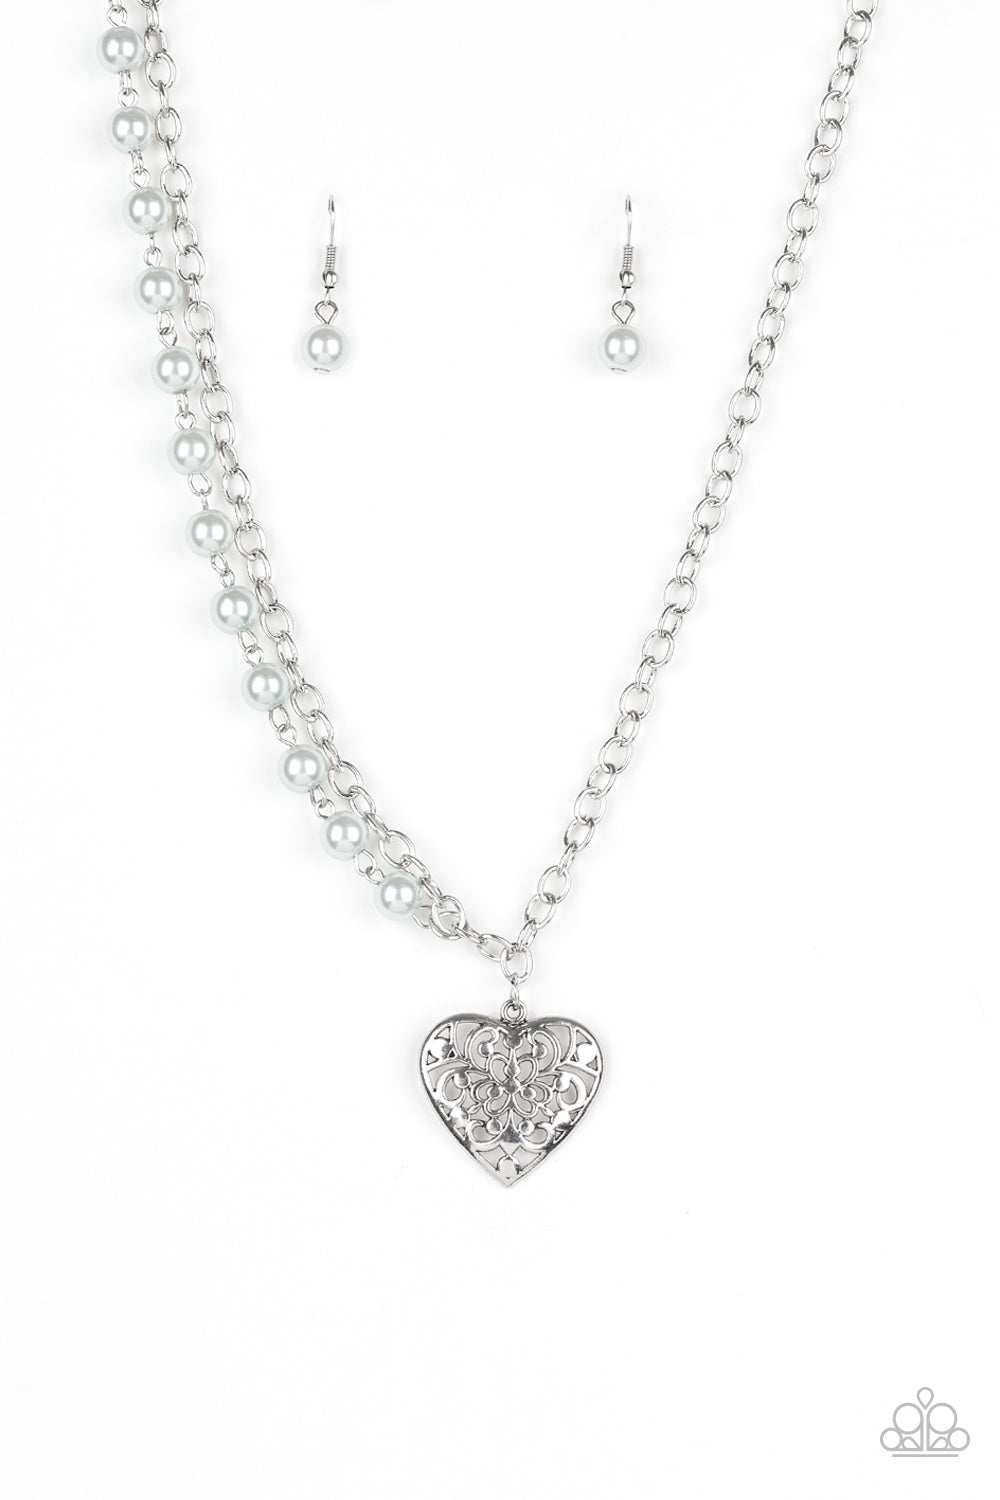 Forever In My Heart - Silver Necklace Paparazzi Accessories New